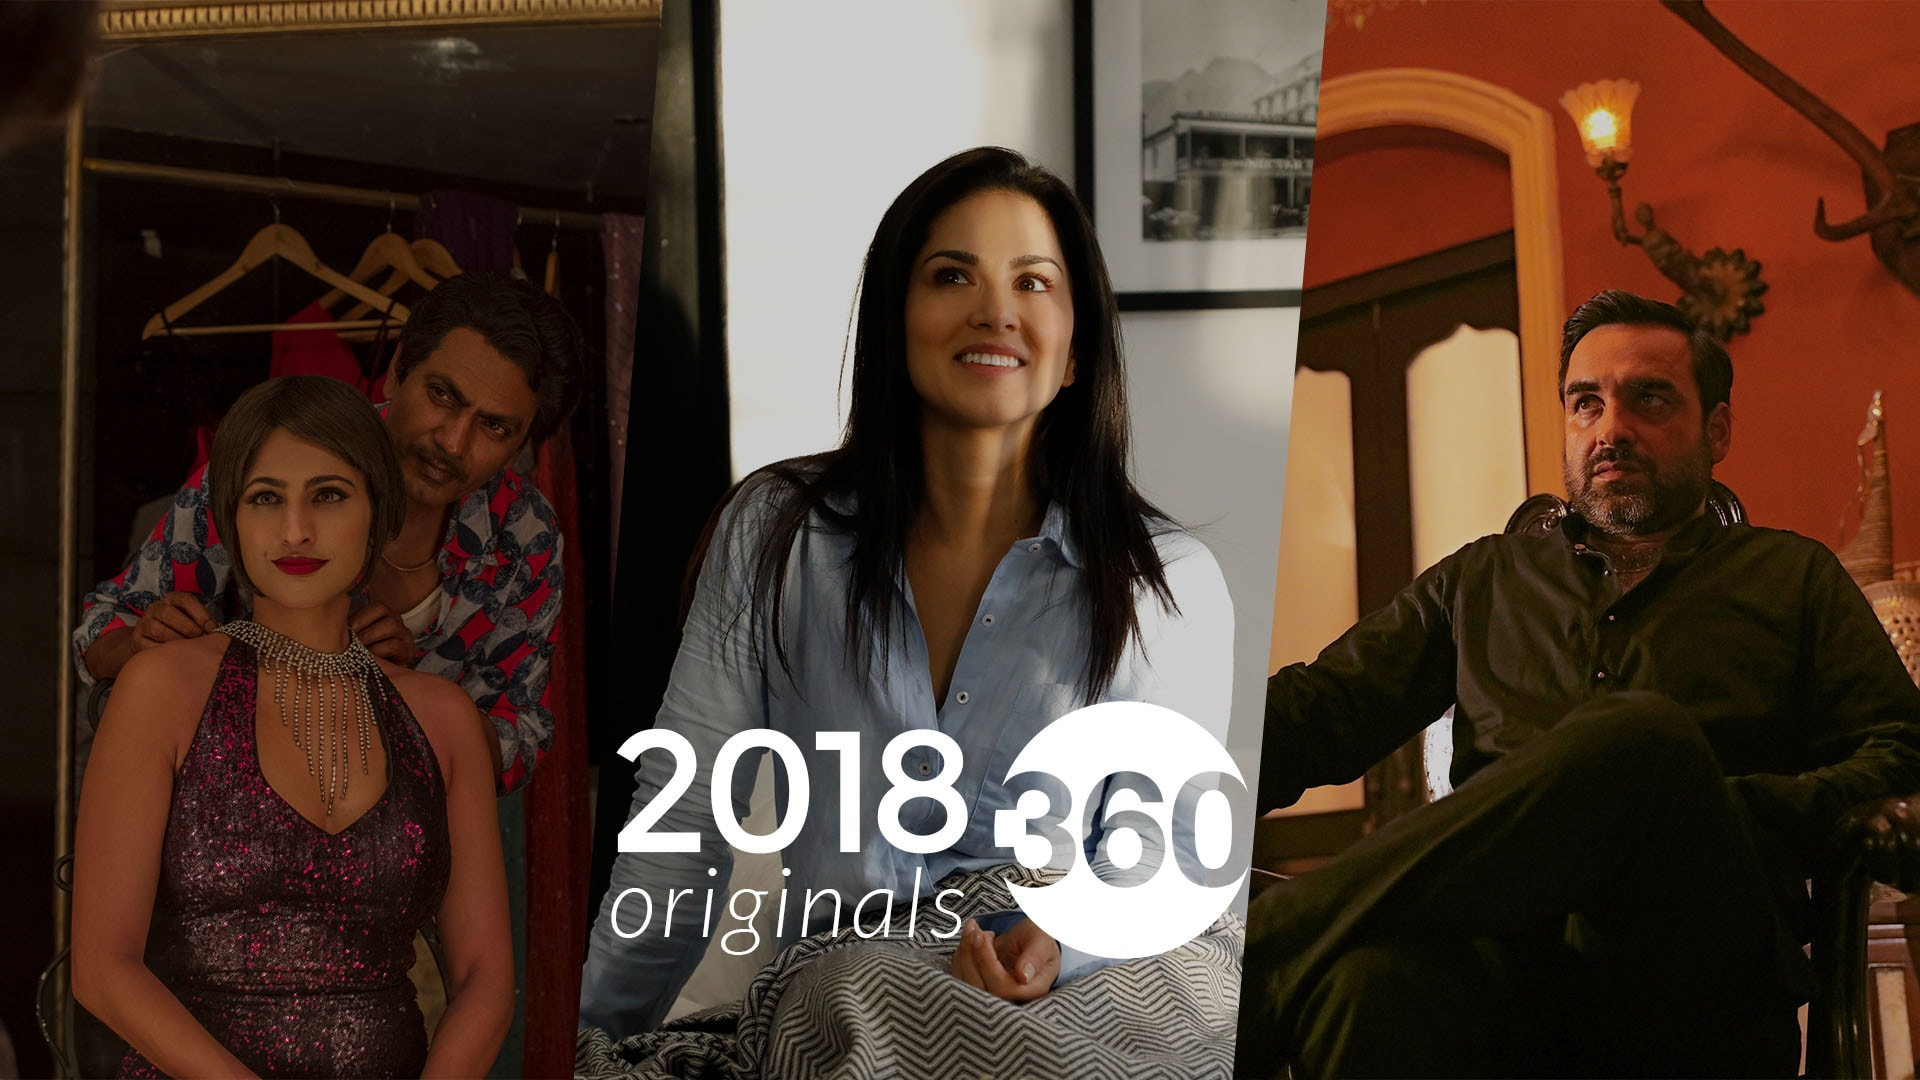 Netflix, Hotstar, and Others Released Over 100 Indian Originals in 2018. Here Are All of Them